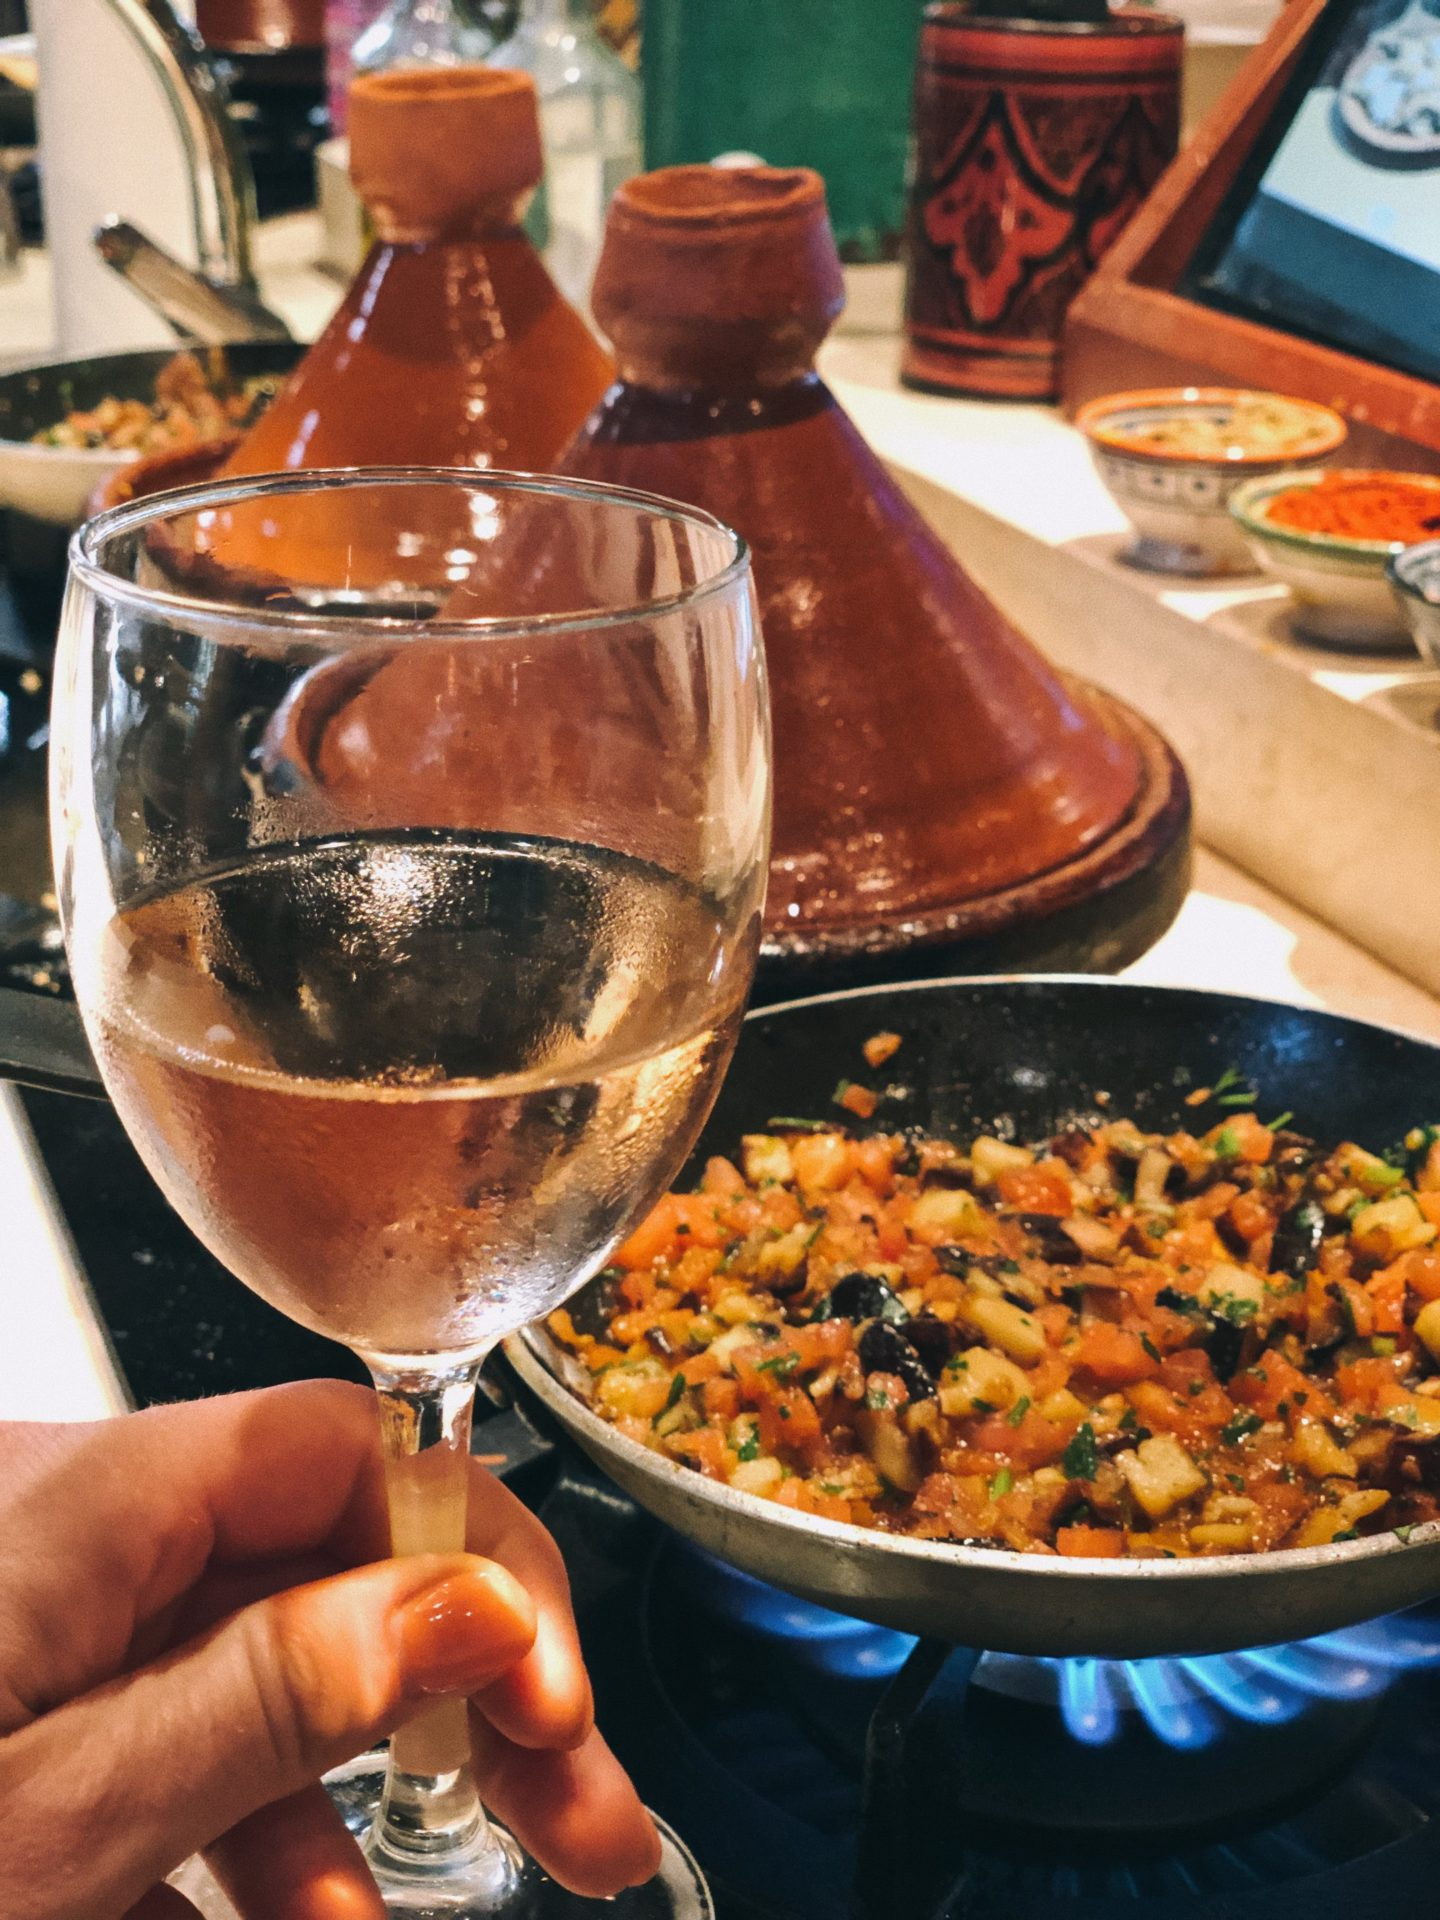 Sipping a cold glass of rose while making traditional Moroccan cuisine at a cooking class in Morocco.